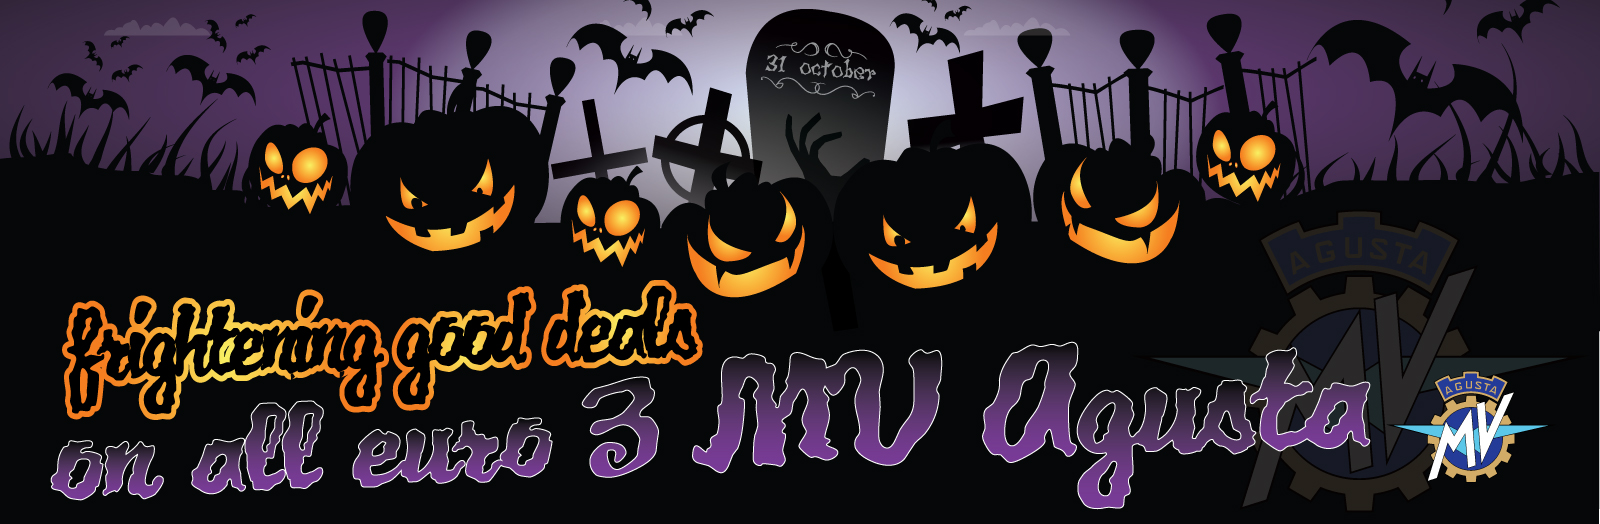 HALLOWEEN DEALS THAT WILL WAKE THE DEAD!!